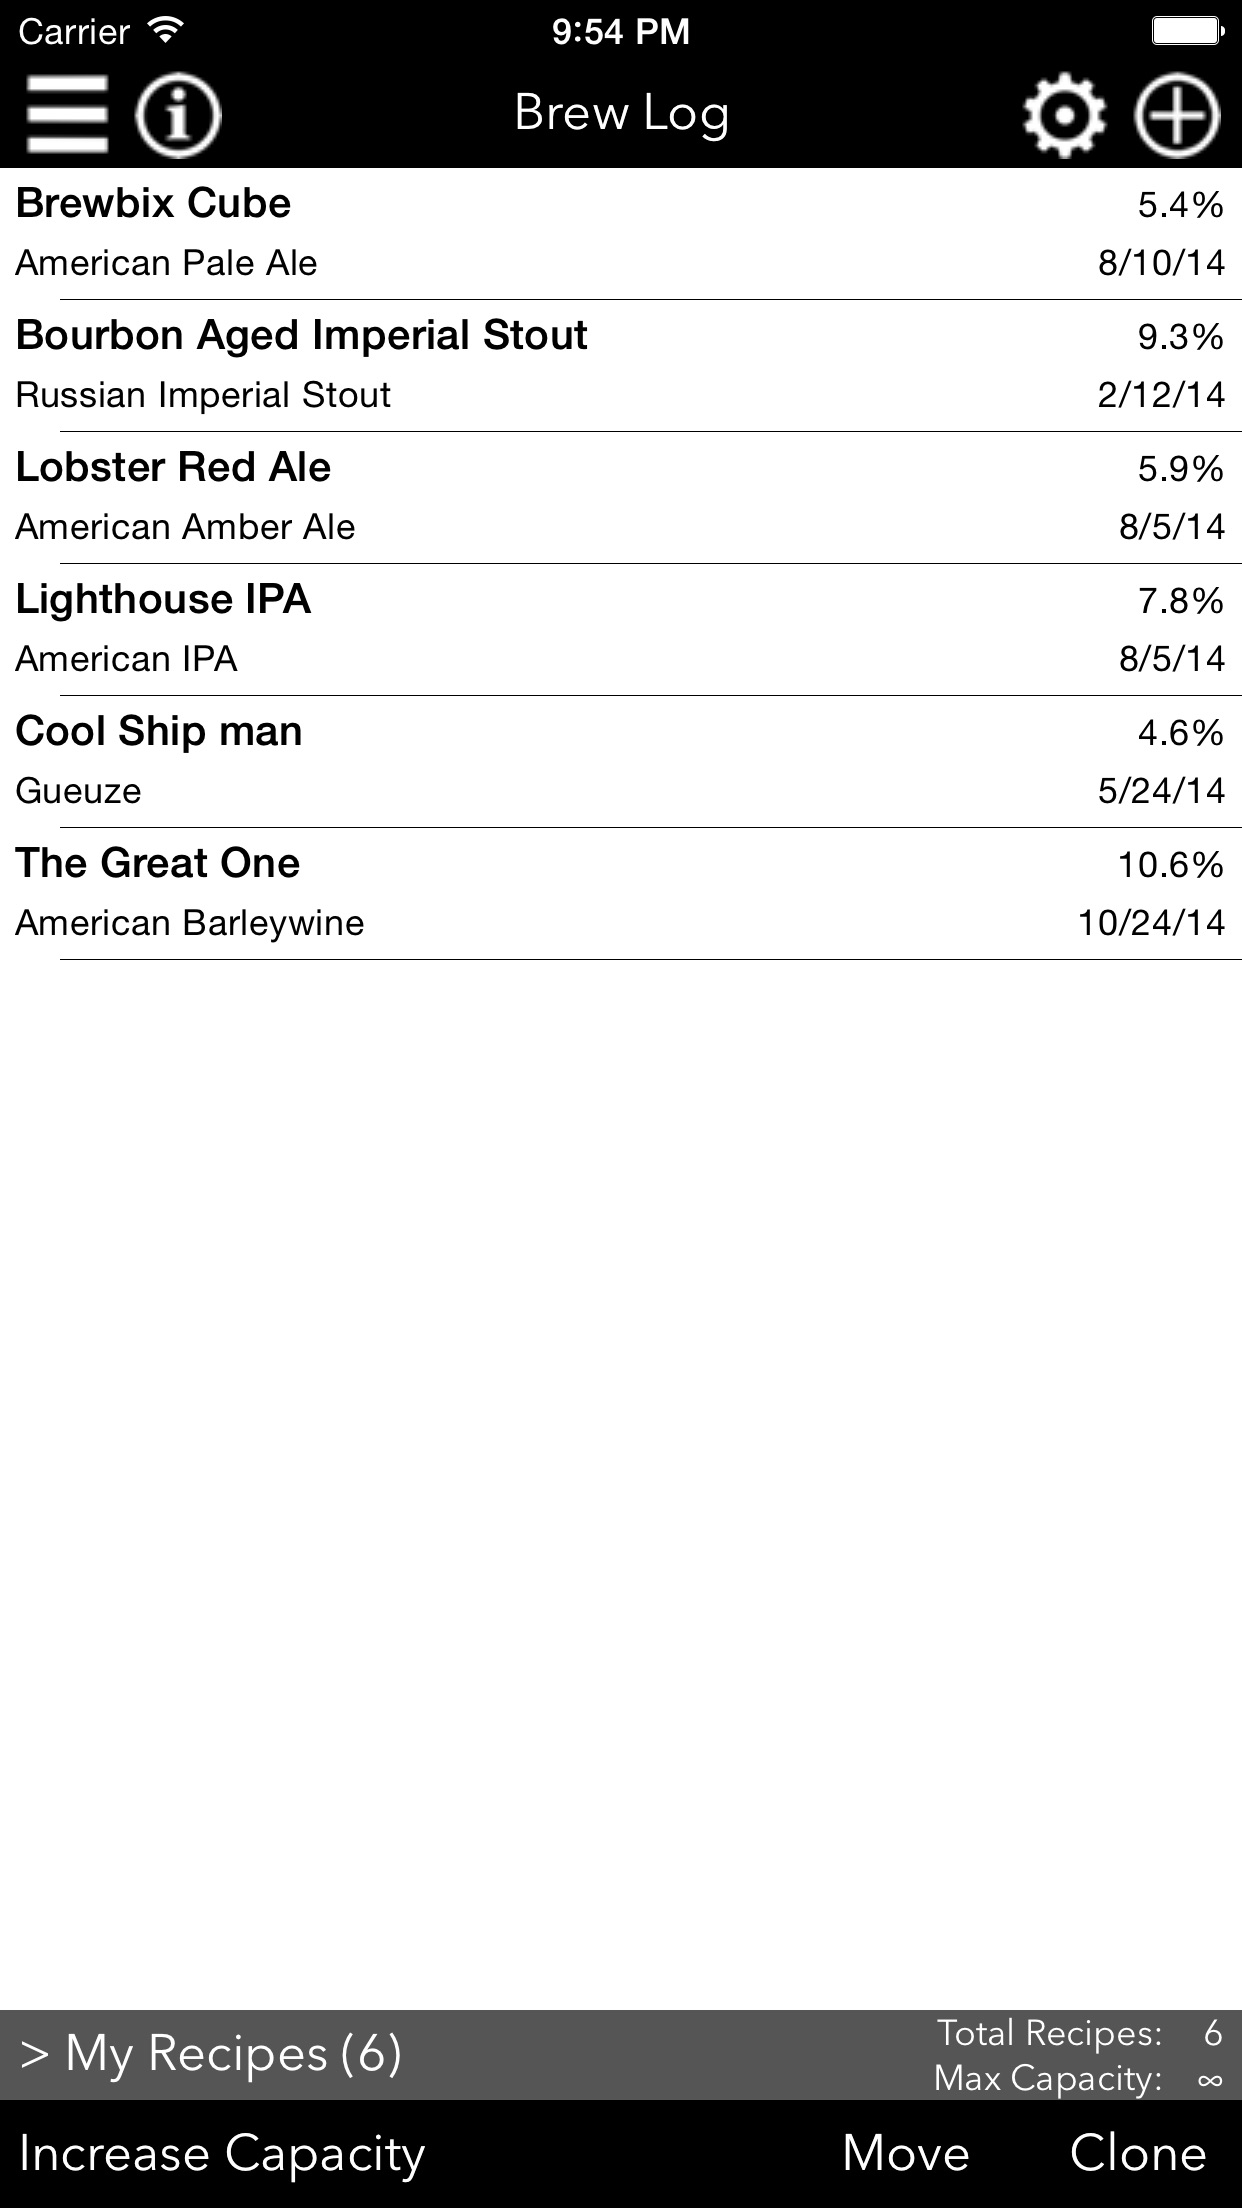 Fermenticus Brew Log - Home Brewing Calculator & Logbook Screenshot